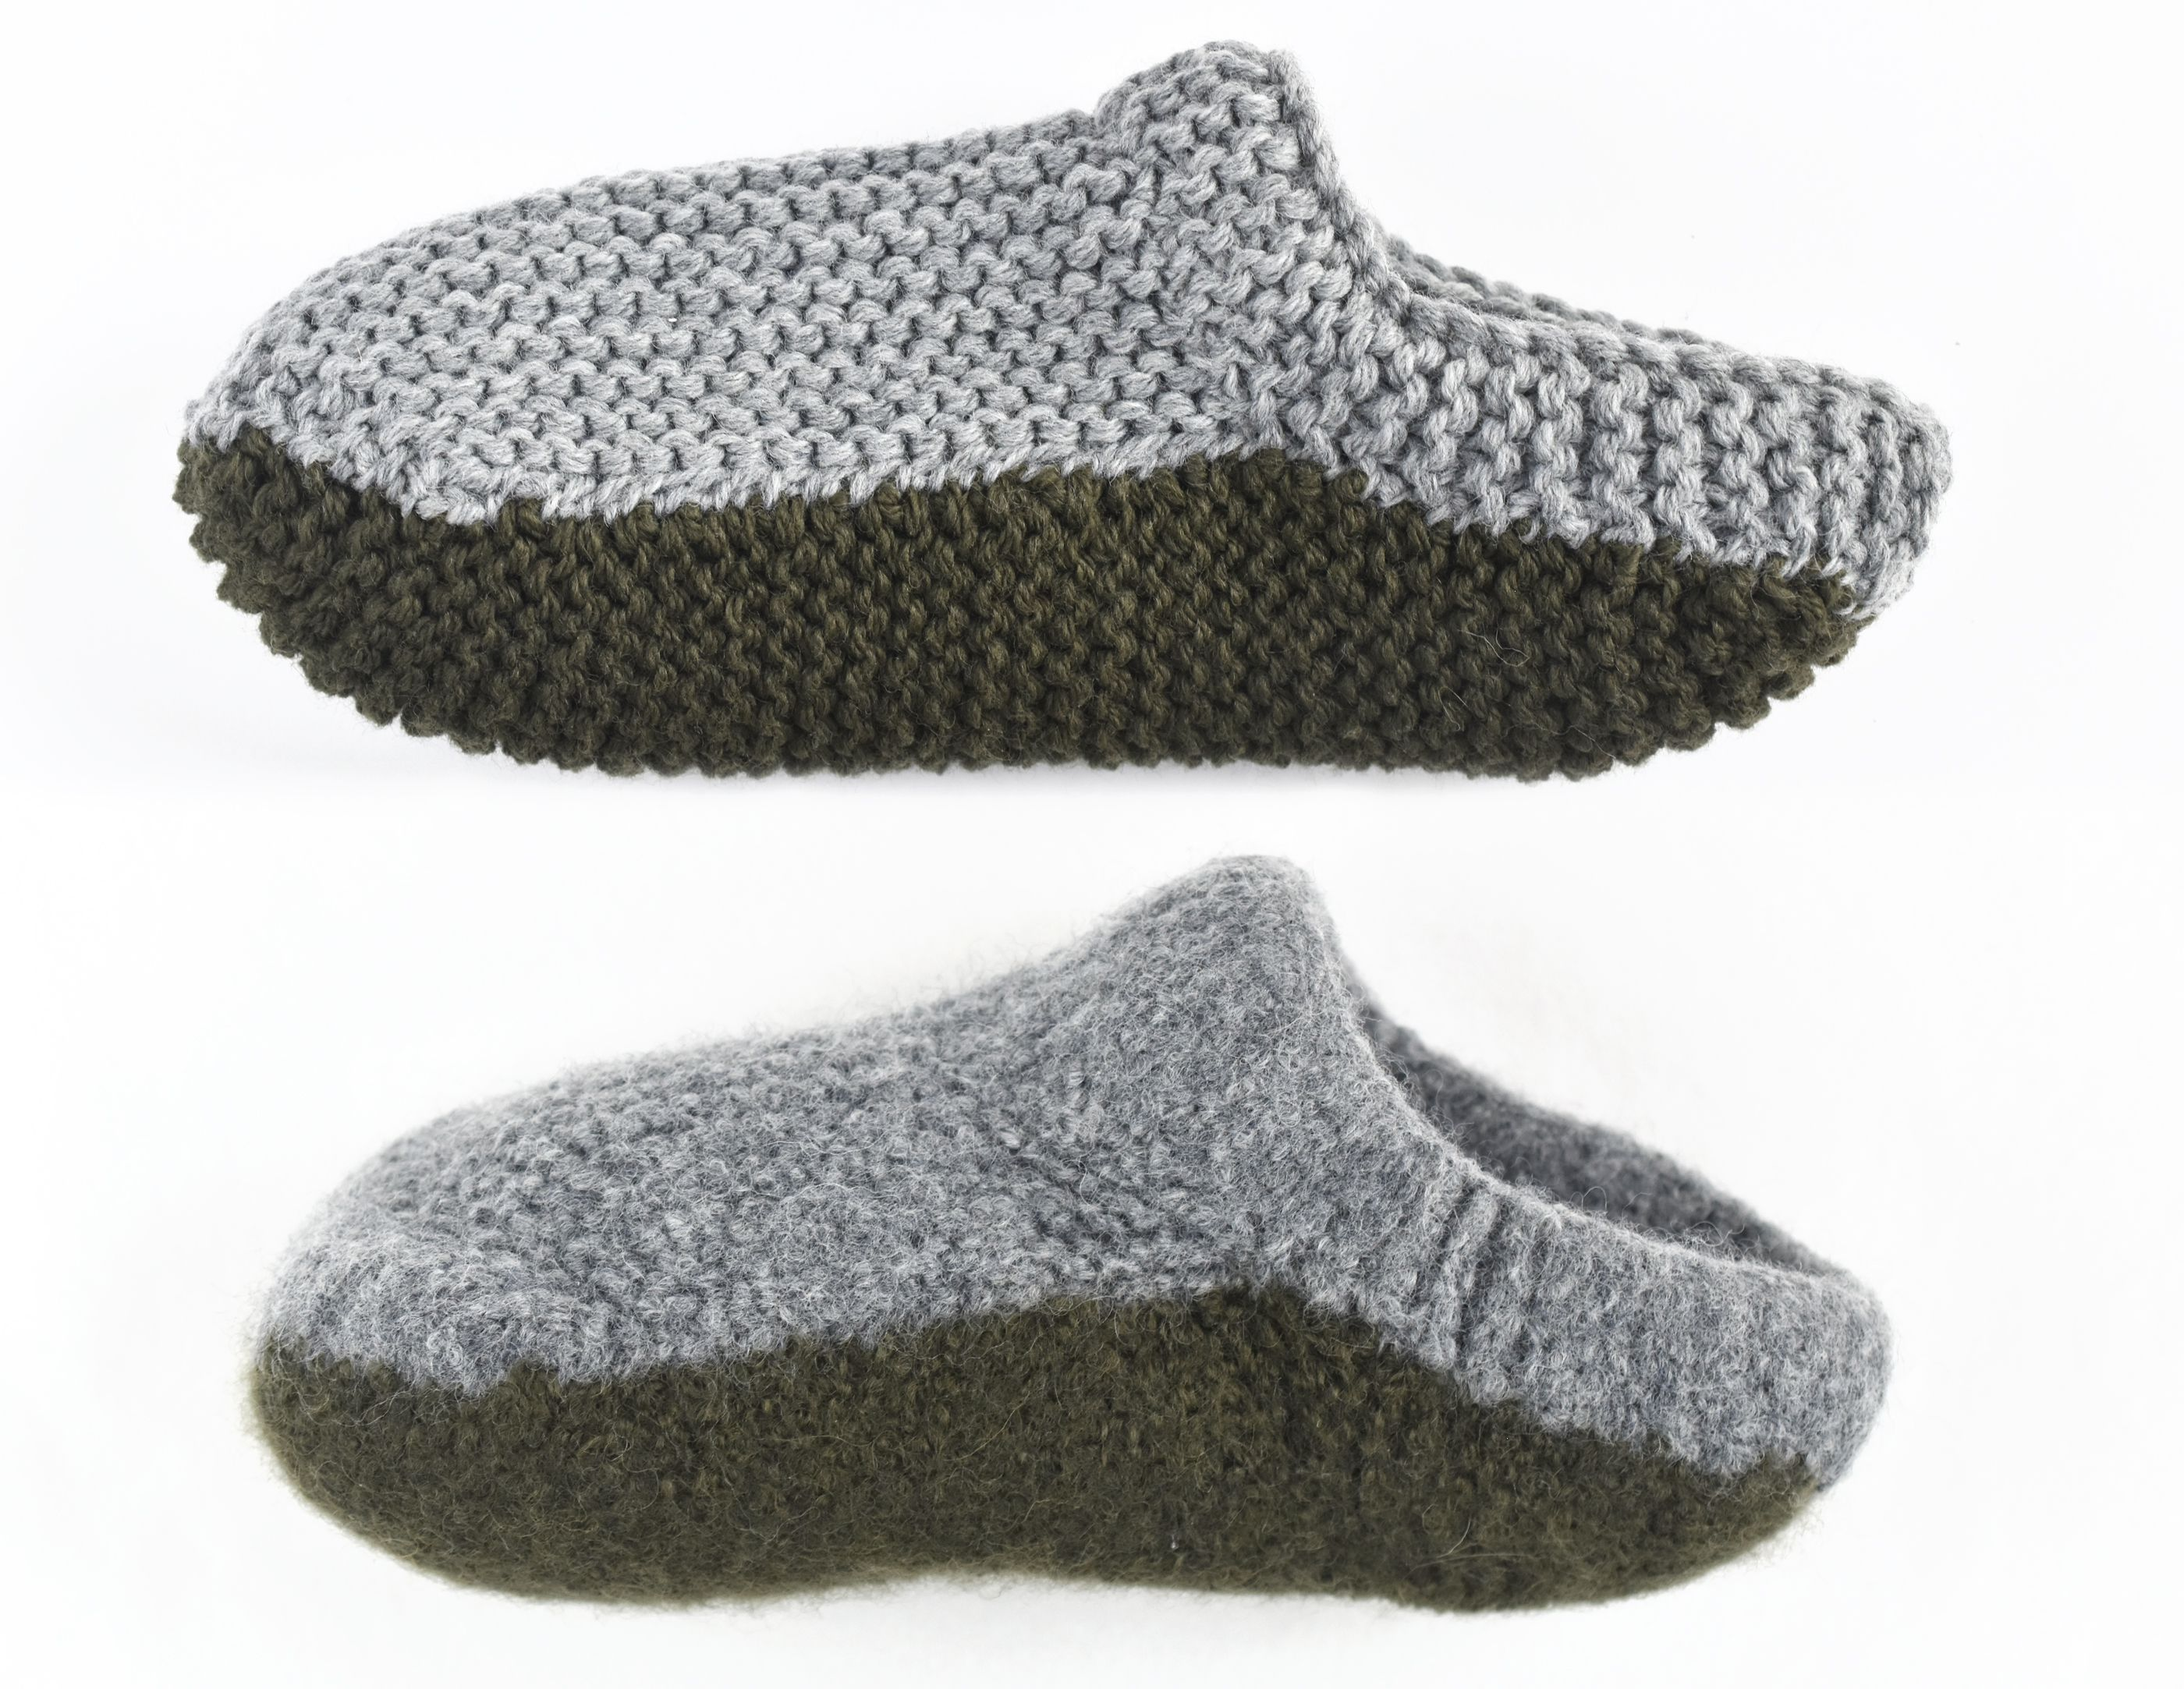 Felted Knit Slipper Before and After